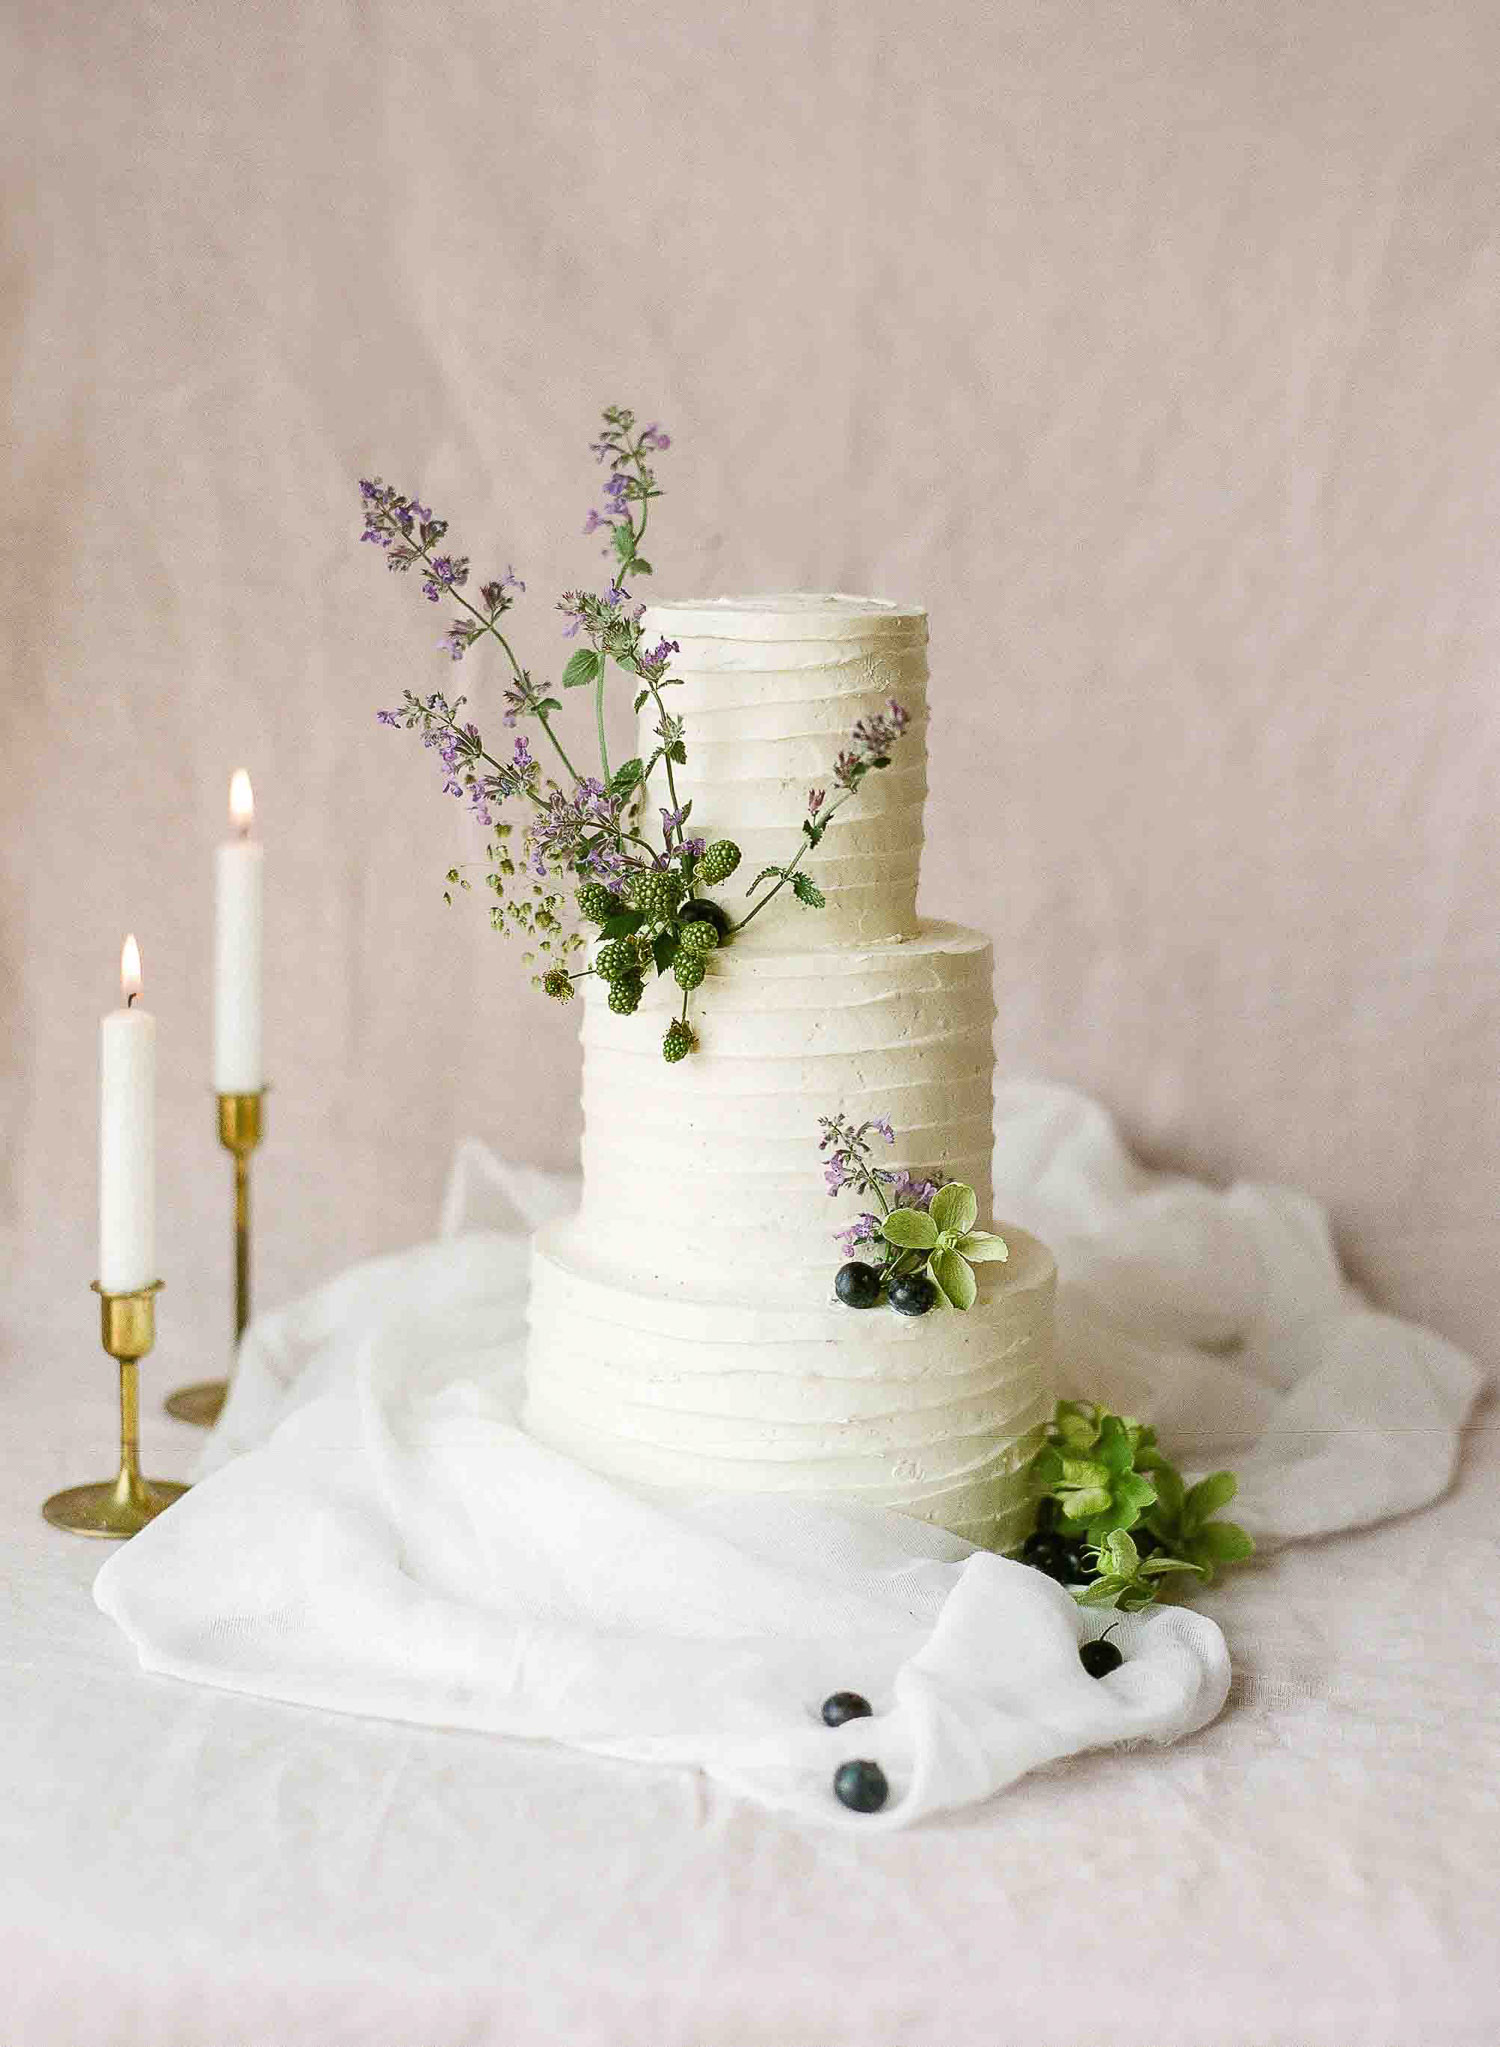 white wedding cake with minimalist floral decor